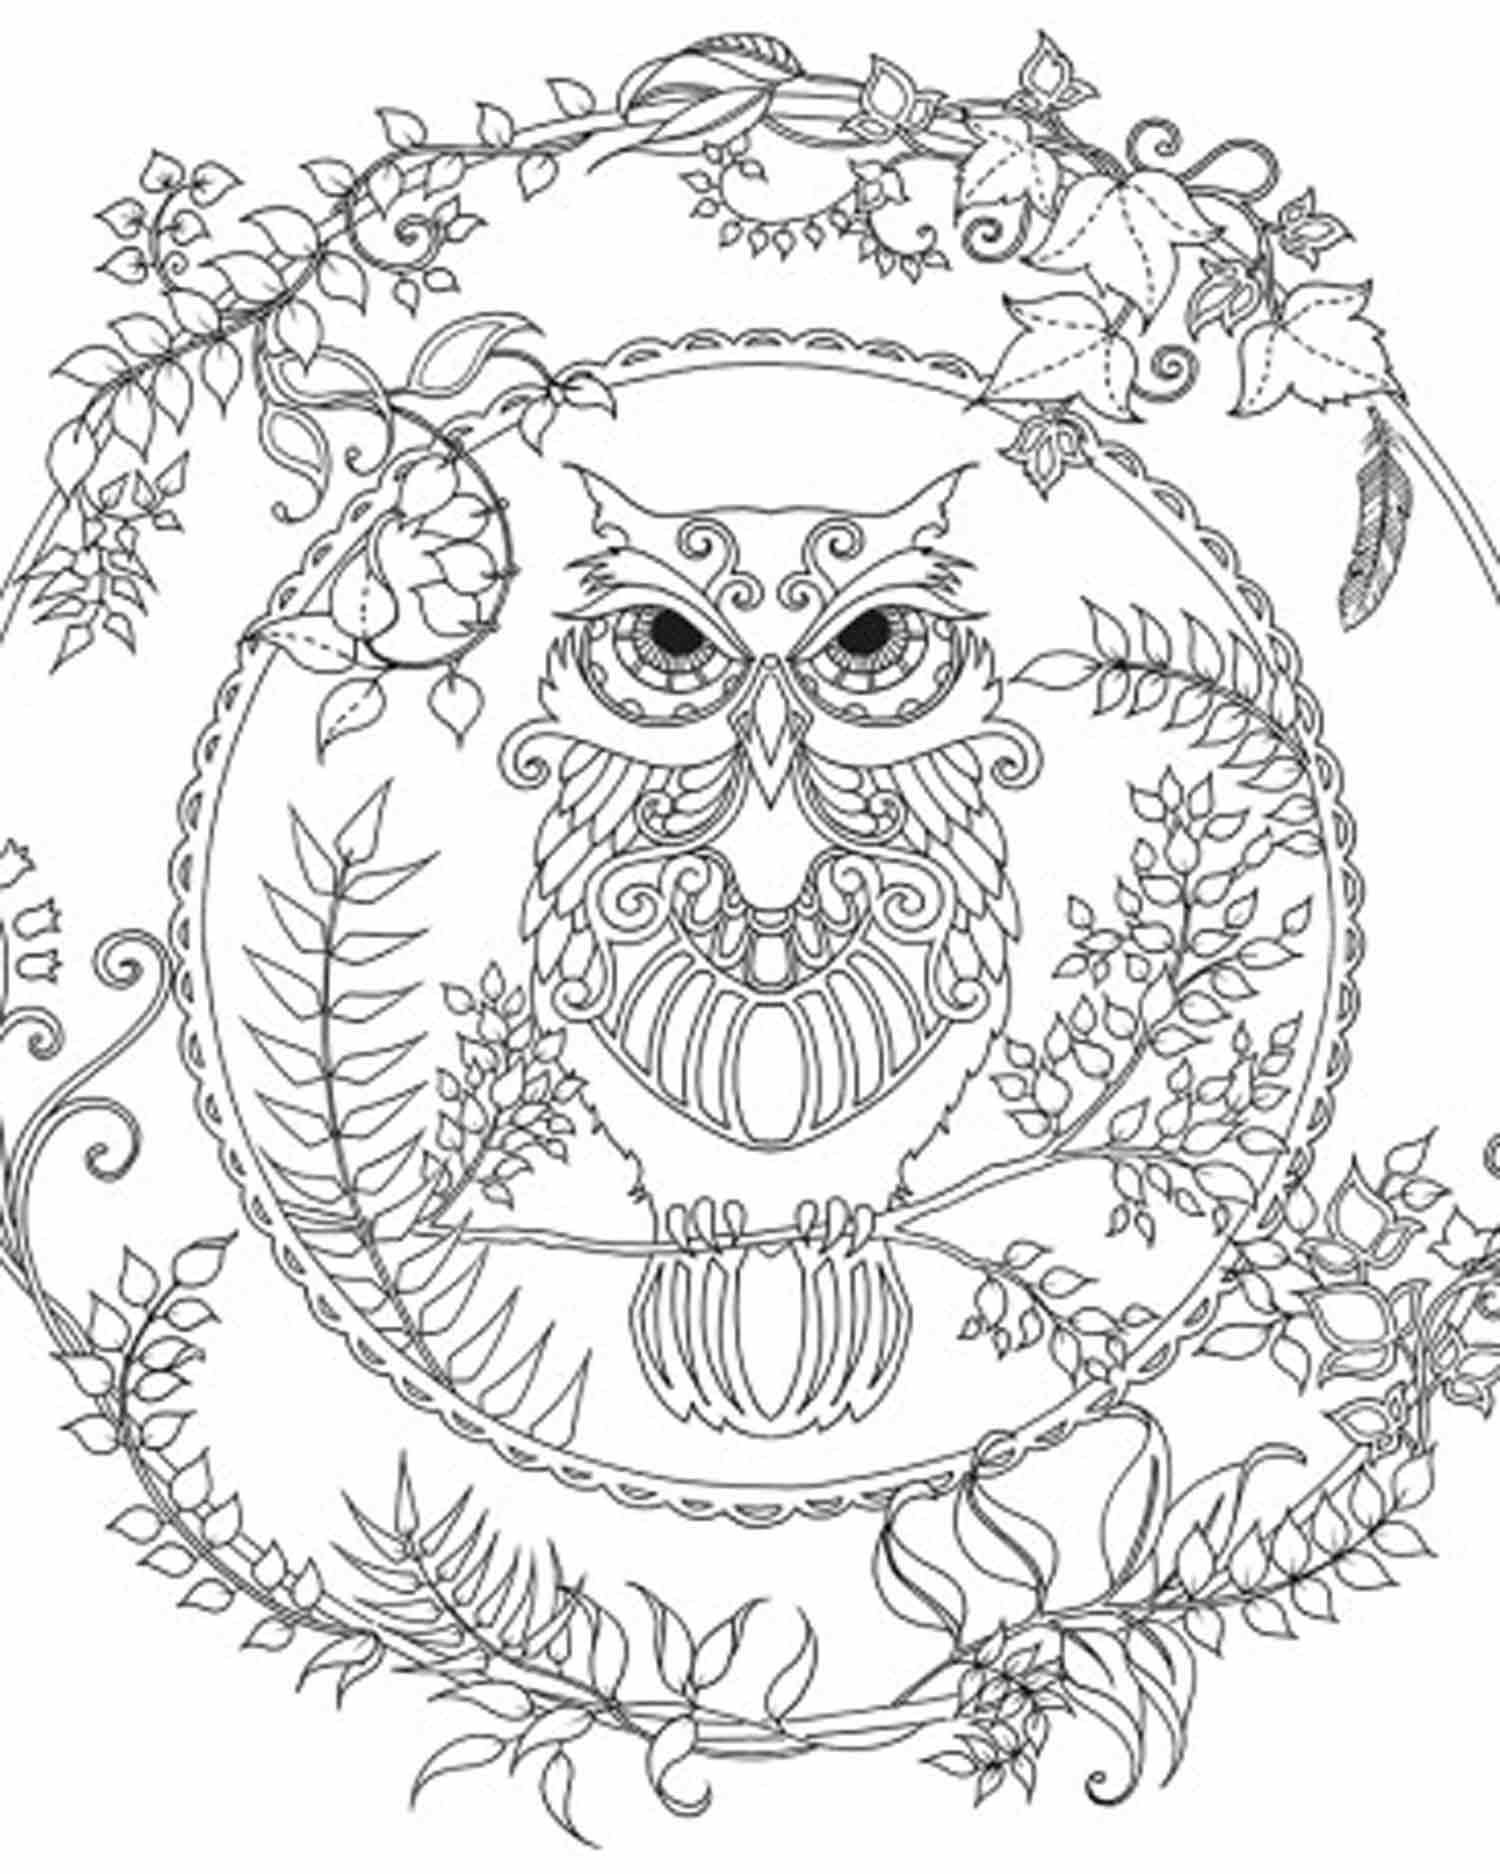 brightbird free coloring pages art stuff pinterest